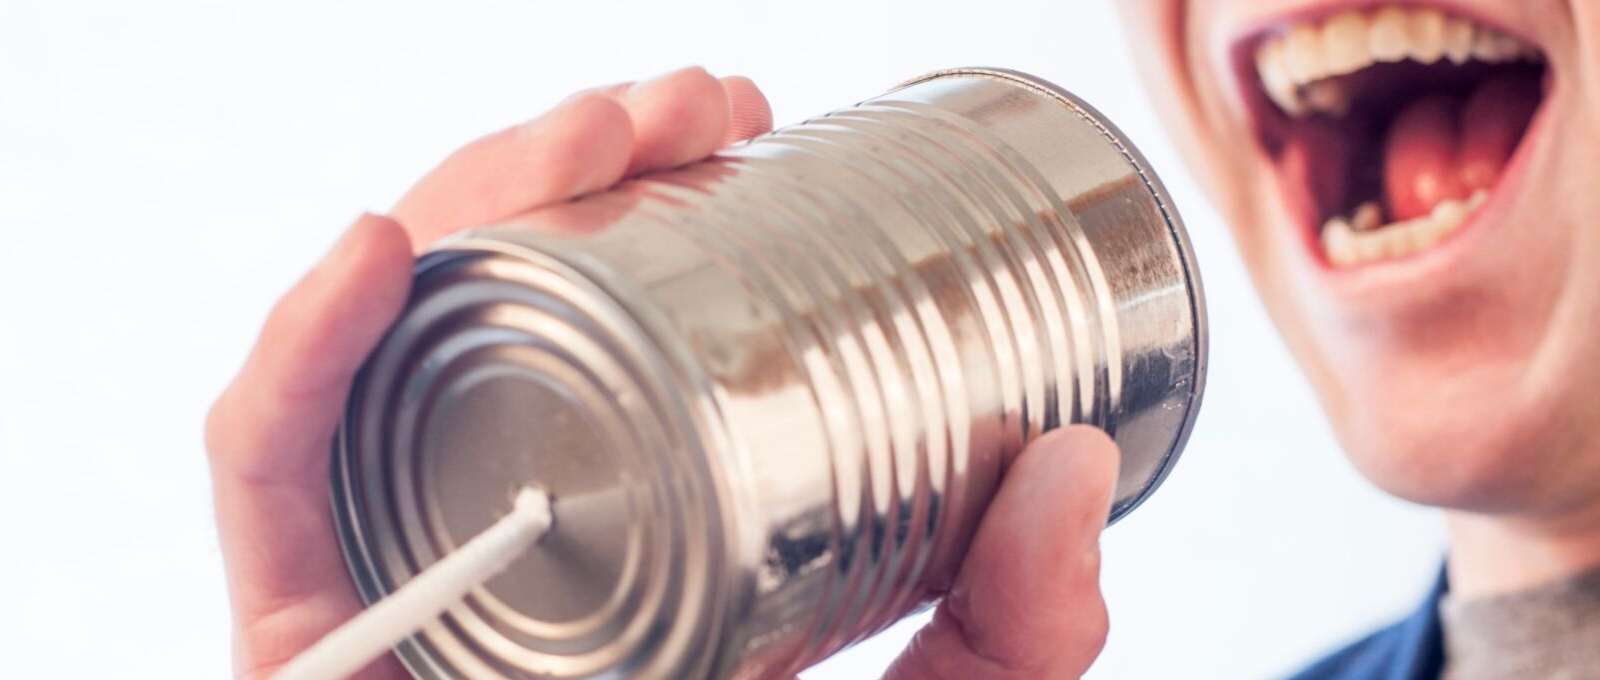 Person talking into tin can to symbolize communication